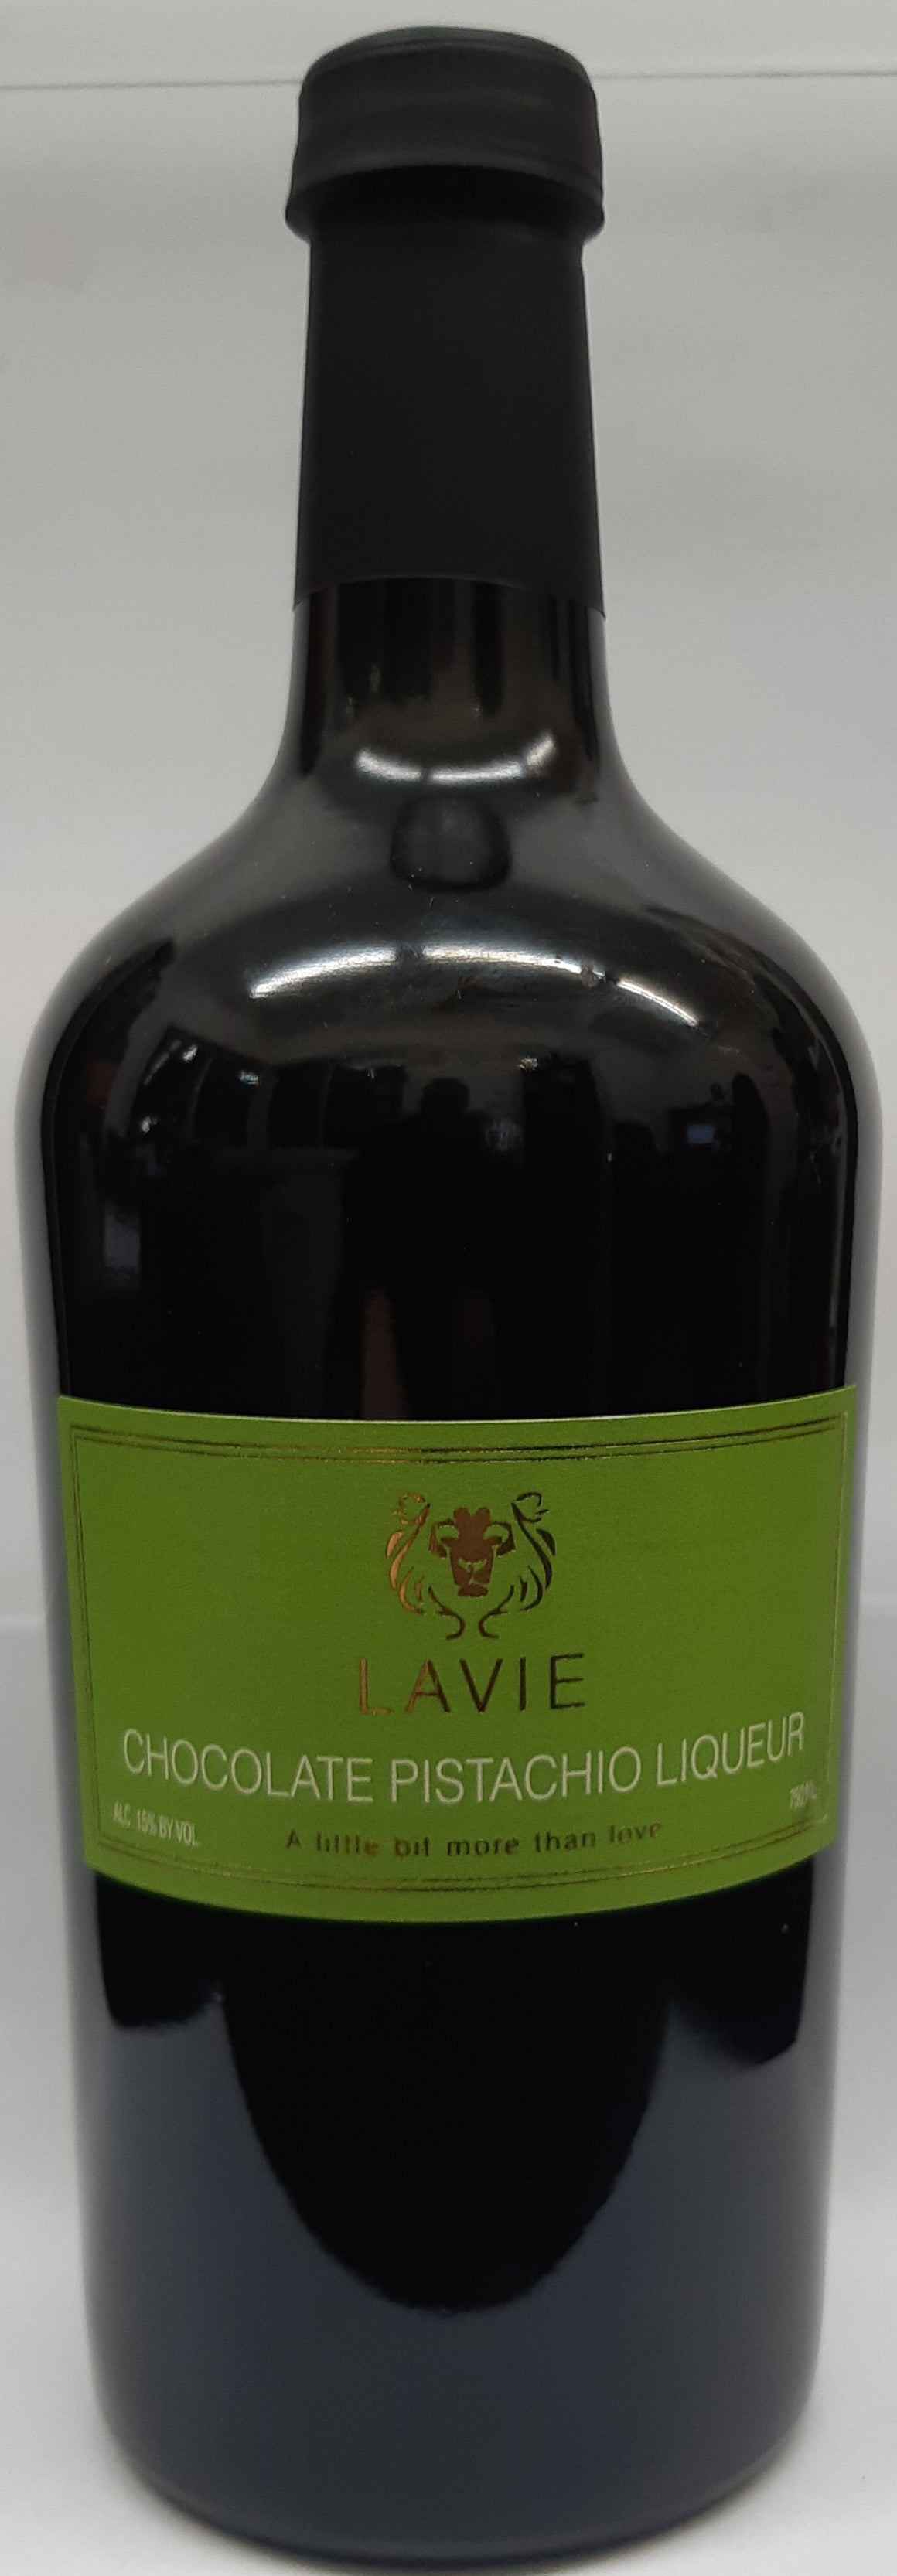 Lavie Chocolate Pistachio Liqueur 750Ml